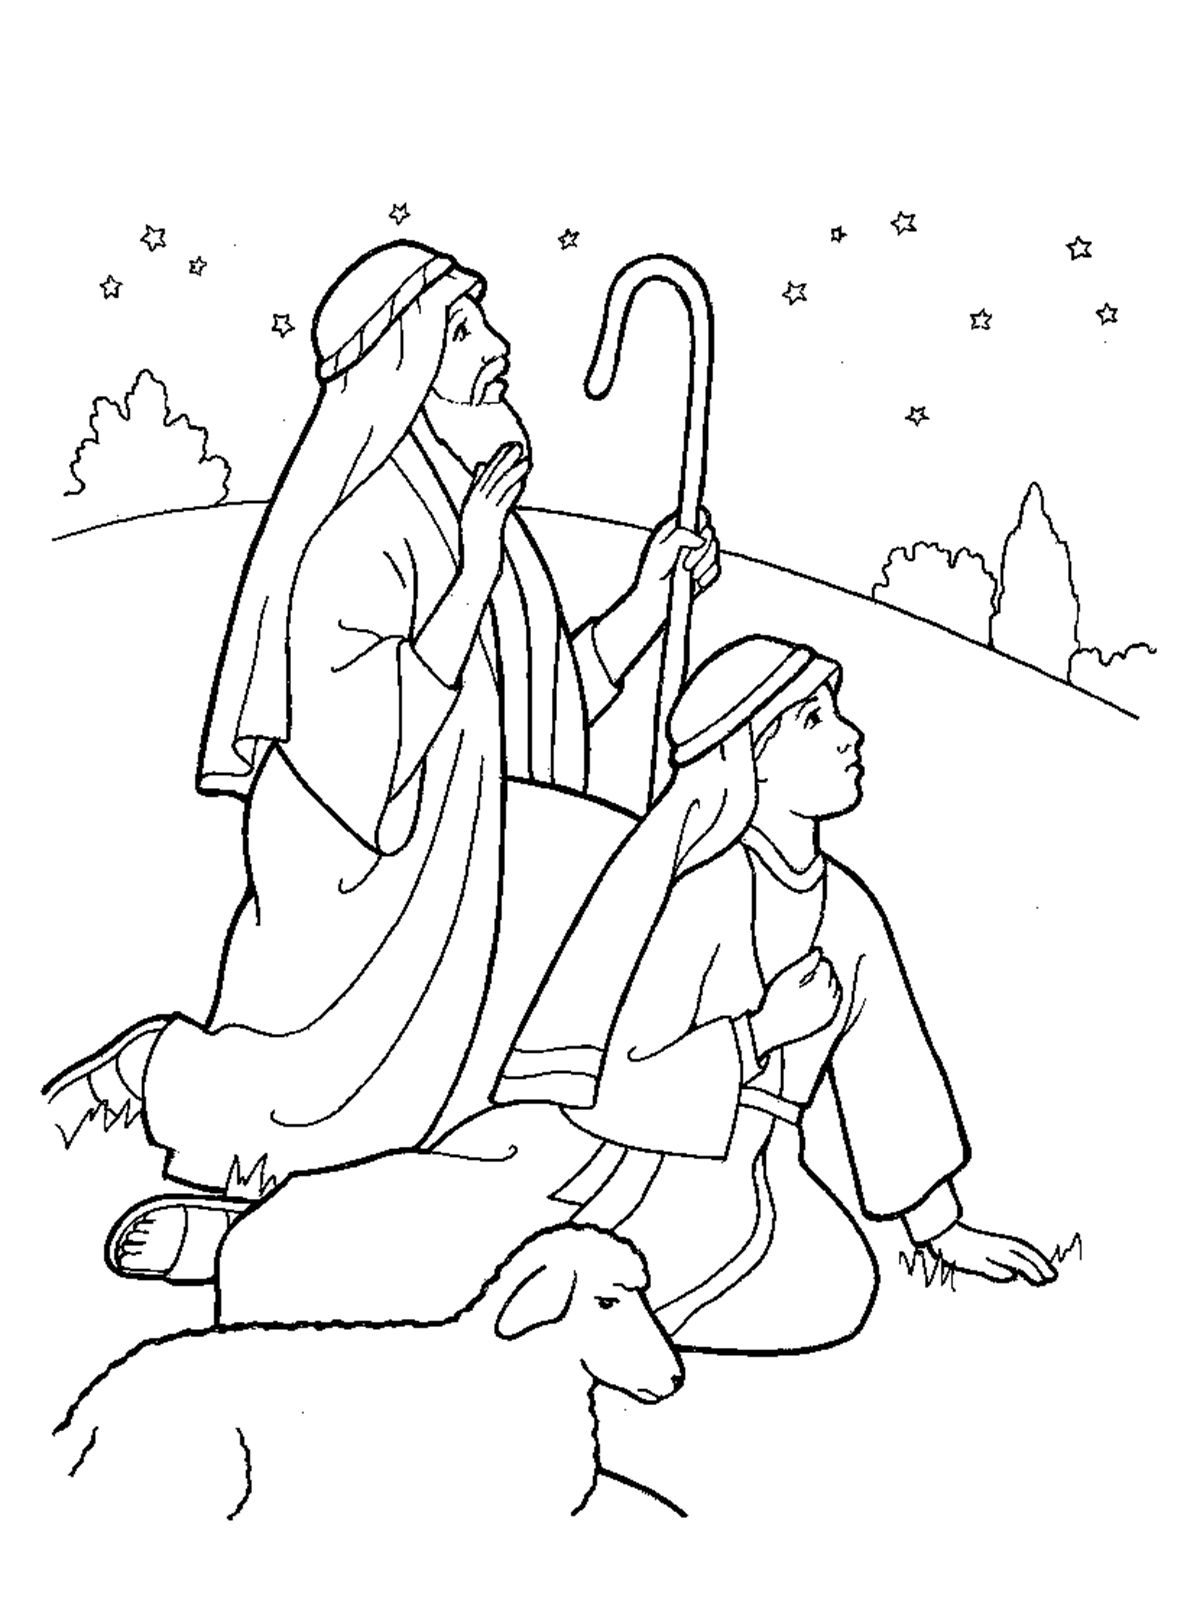 Free Coloring Pages Download Image Result For Christmas Shepherd Maze Re Class Pinterest Of Dorcas